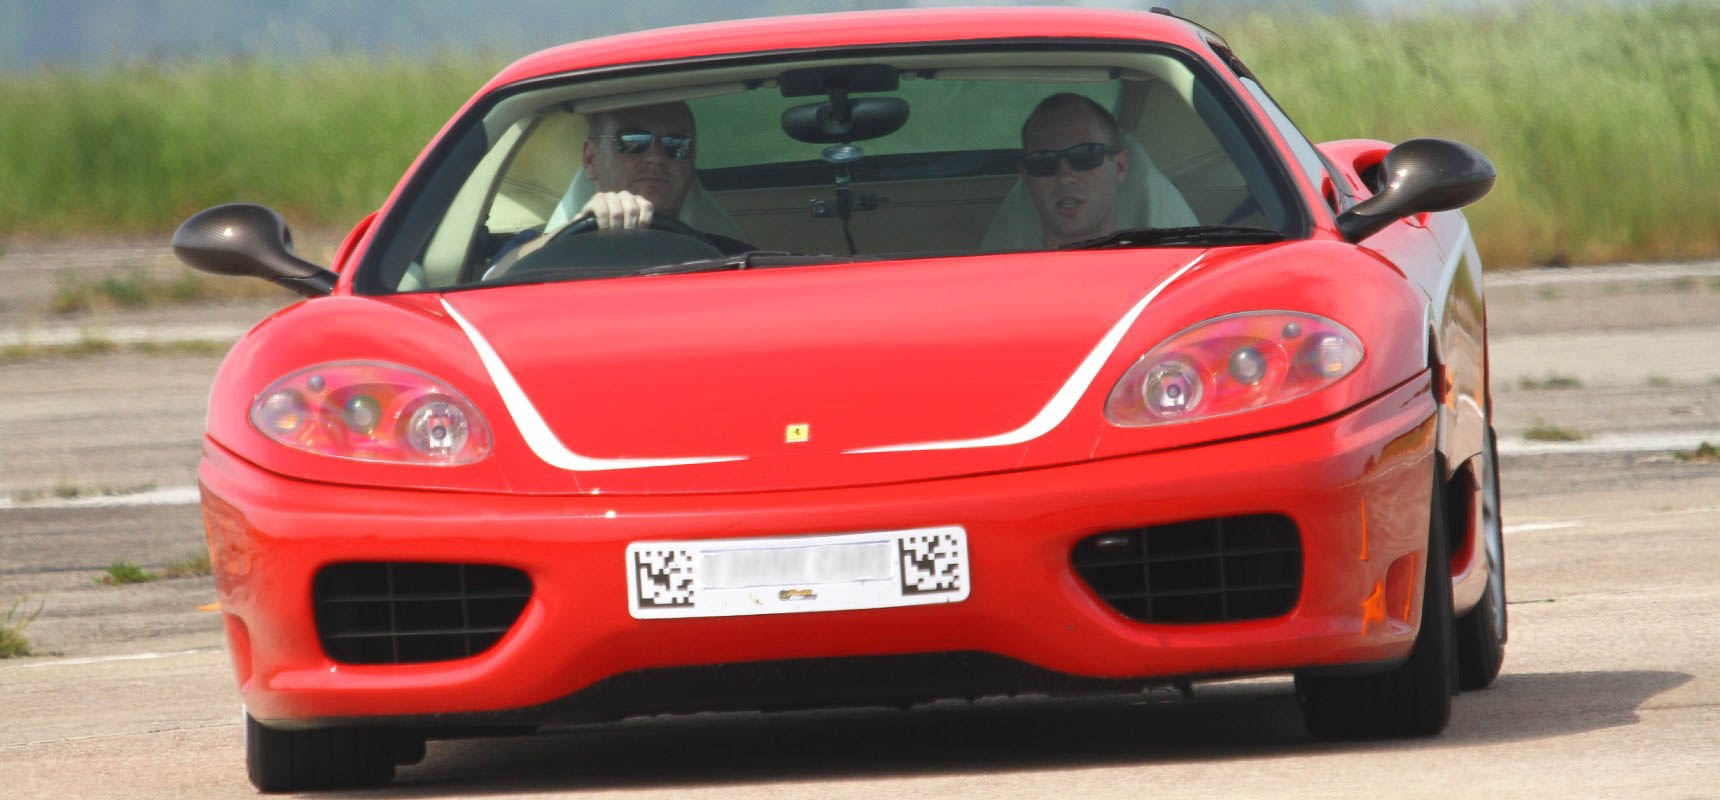 Supercar Driving x4 - Oxfordshire-6